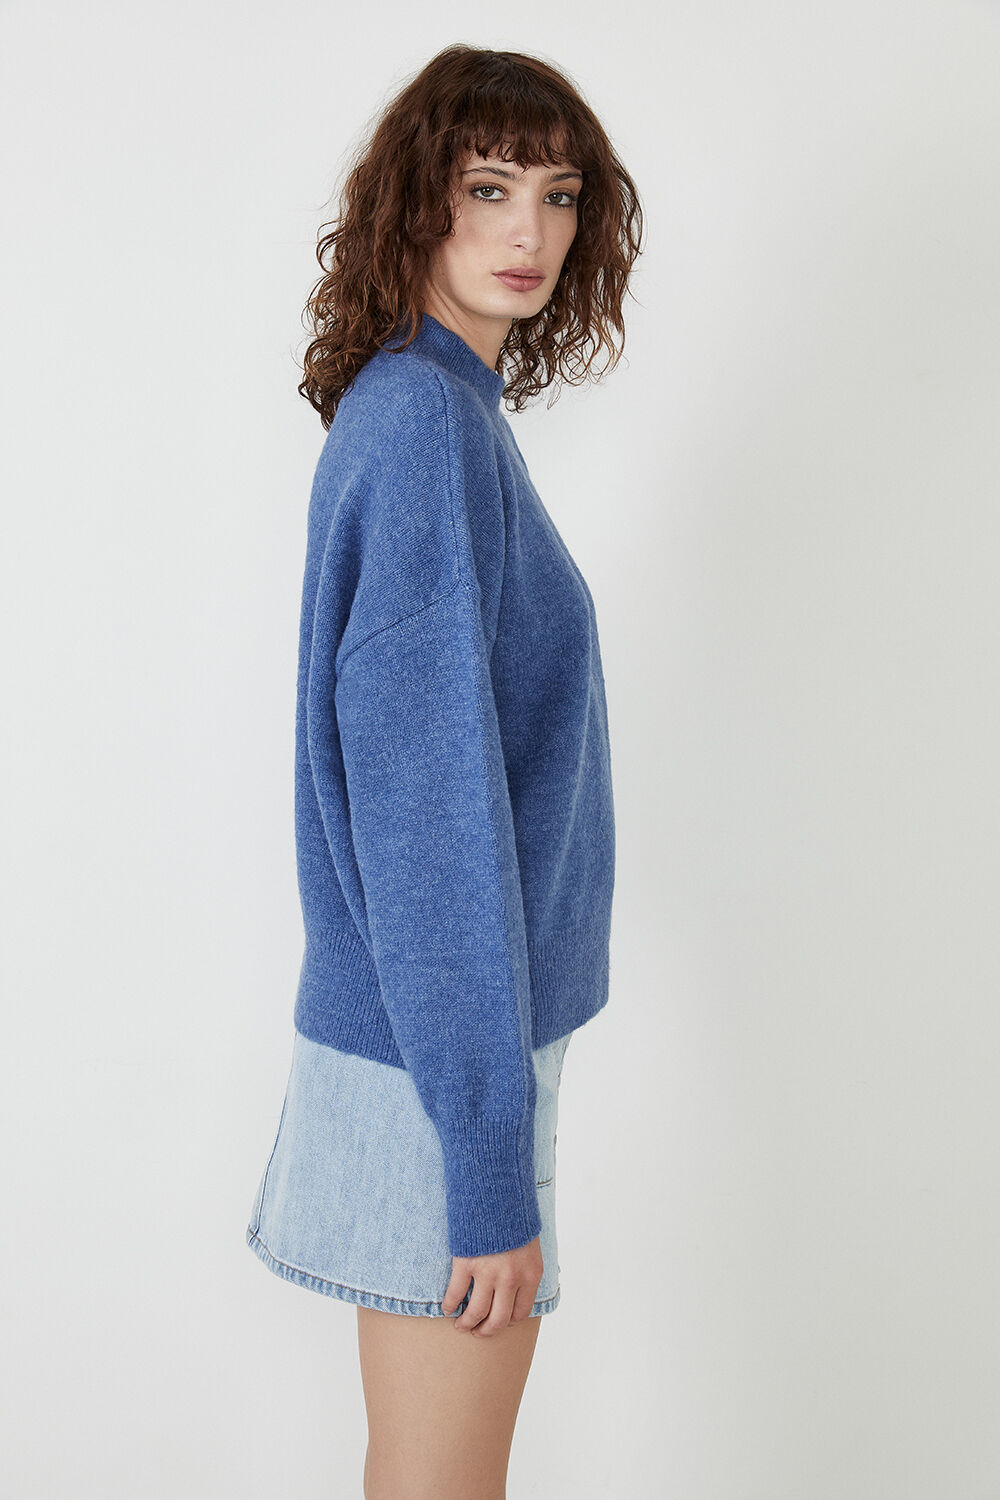 ANNIE OVERSIZED KNIT in colour HEATHER